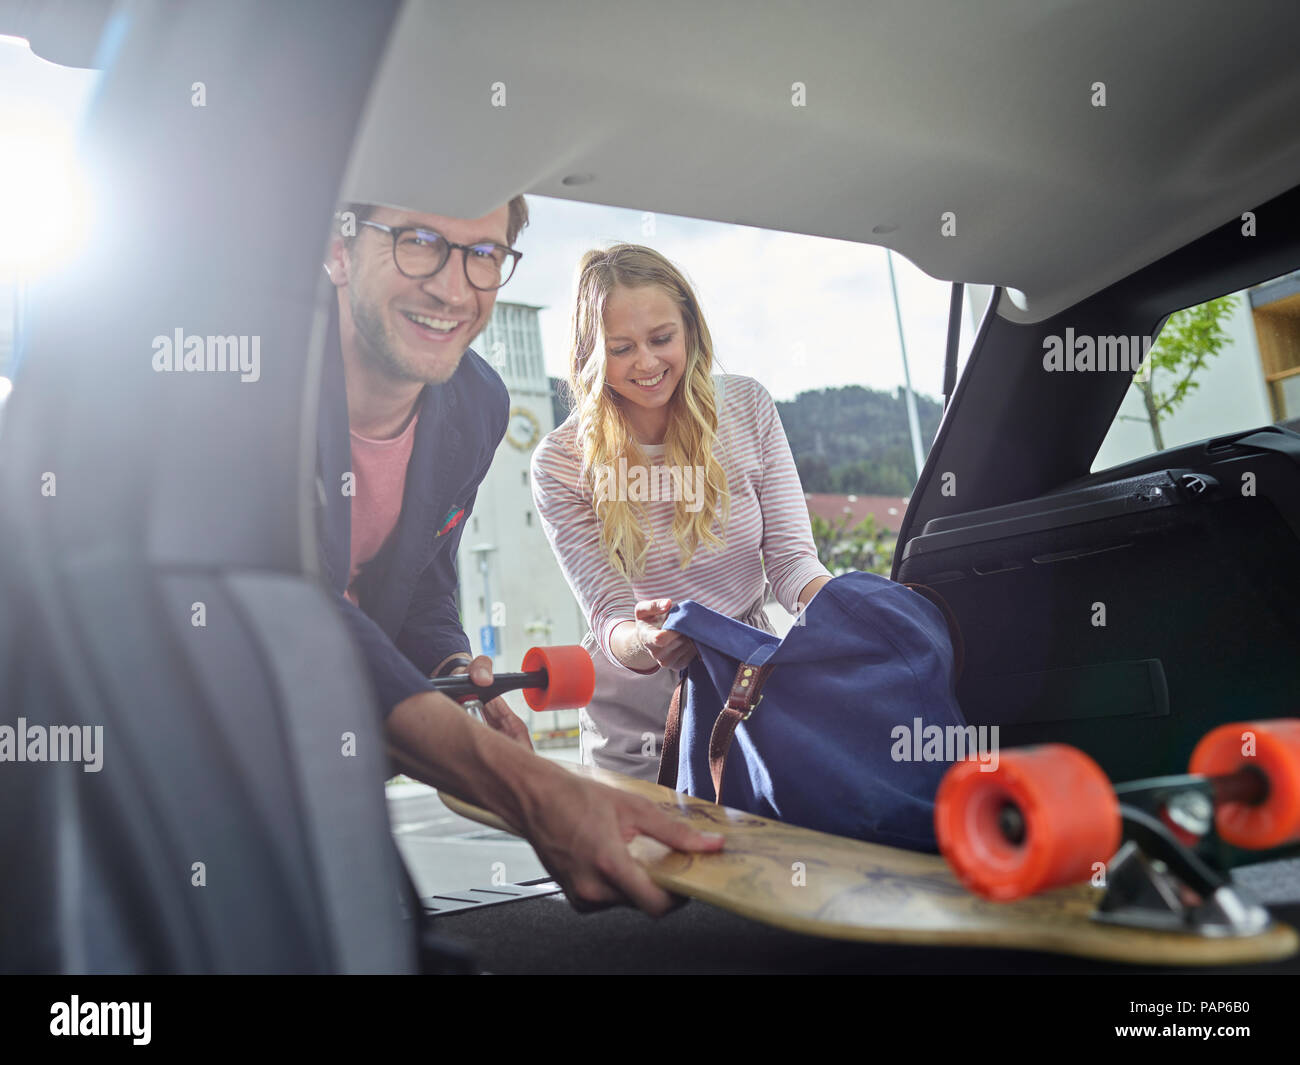 Smiling couple loading boot of electric car - Stock Image